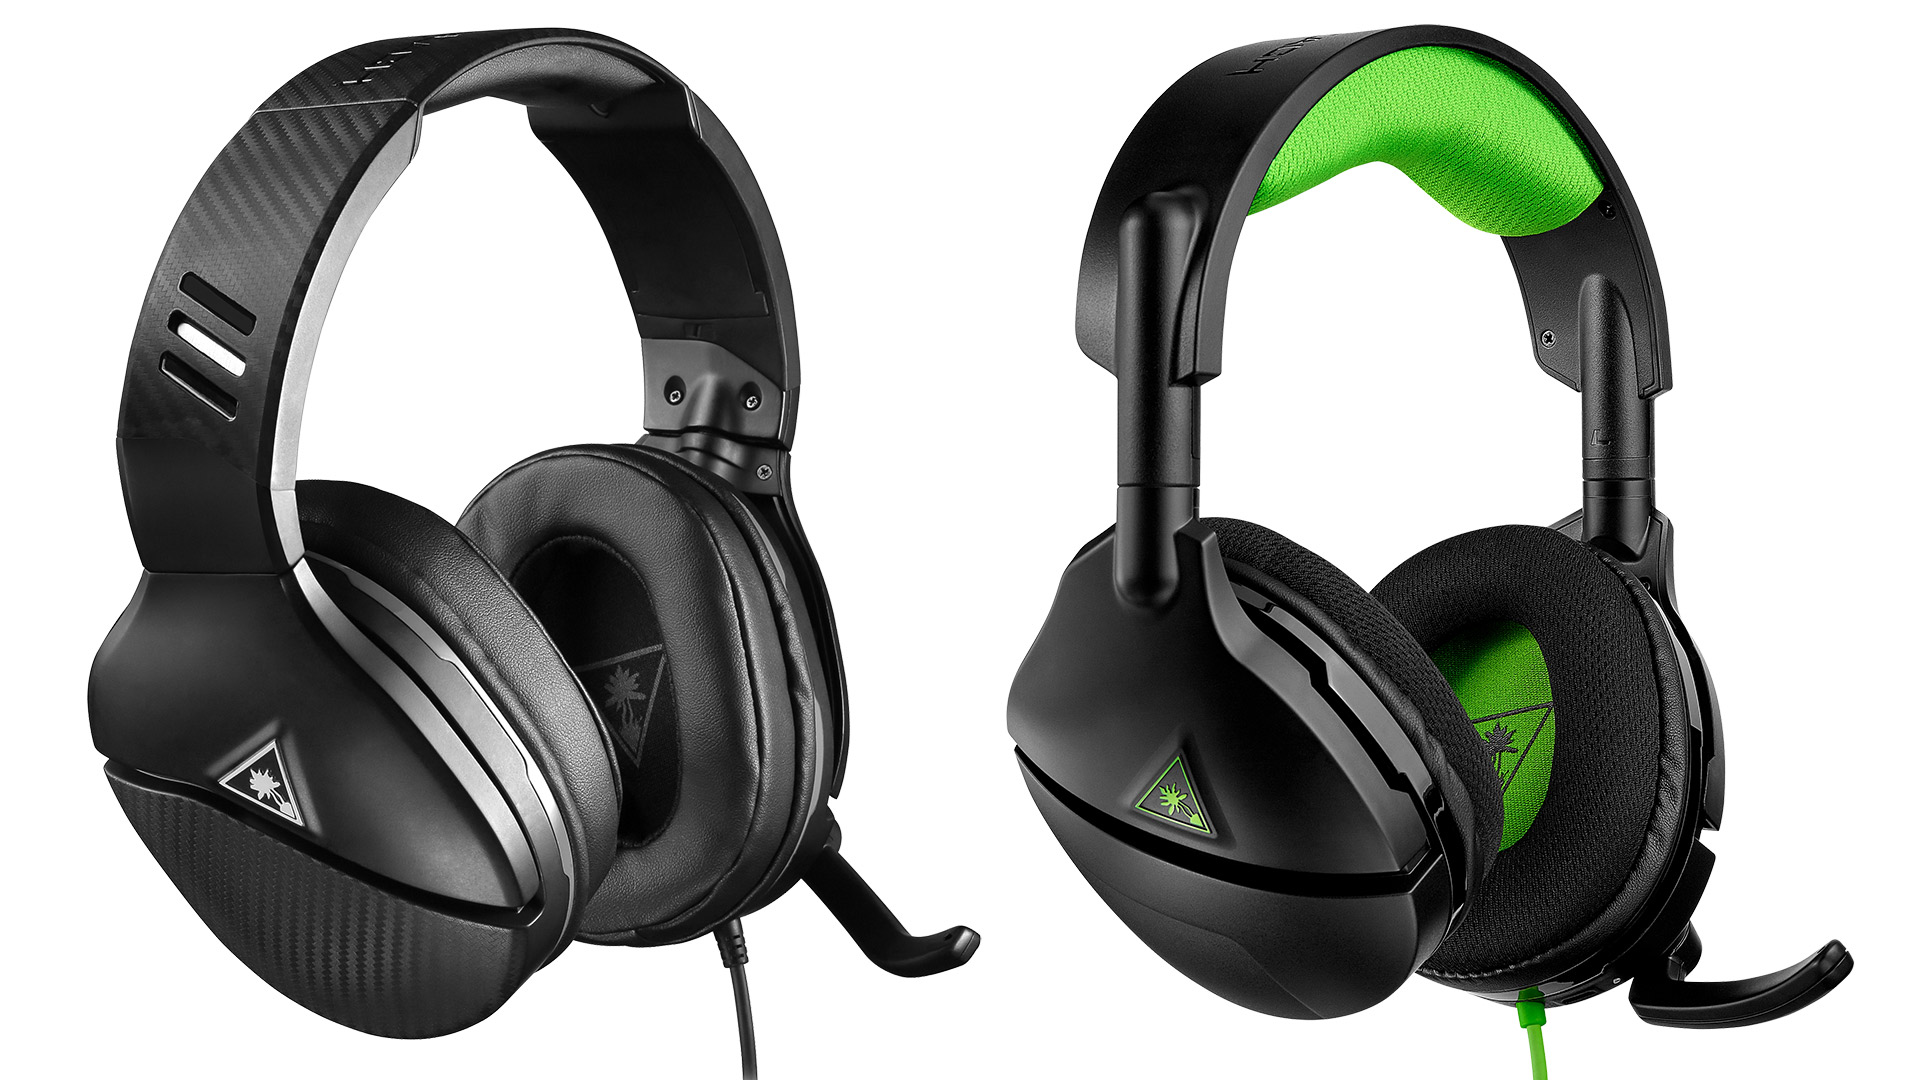 E3 2018: Turtle Beach Shows Recon 200 And Stealth 300 Headsets